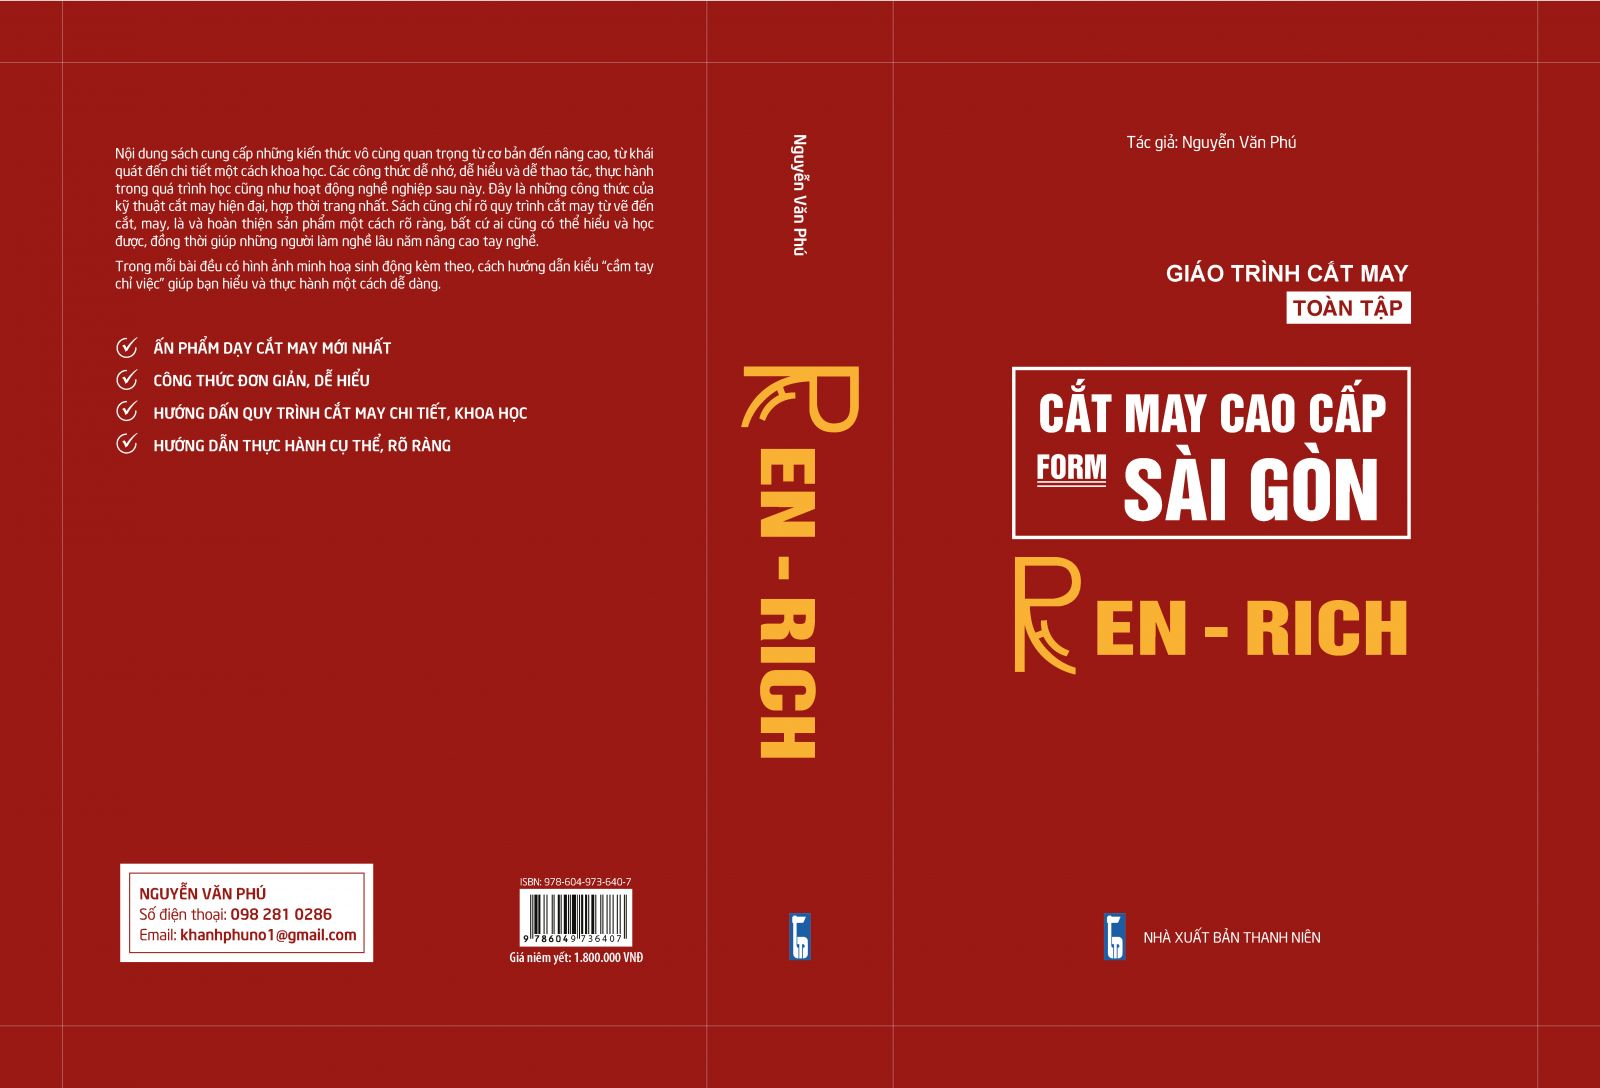 sach-day-cat-may-cao-cap-fom-dang-sai-gon